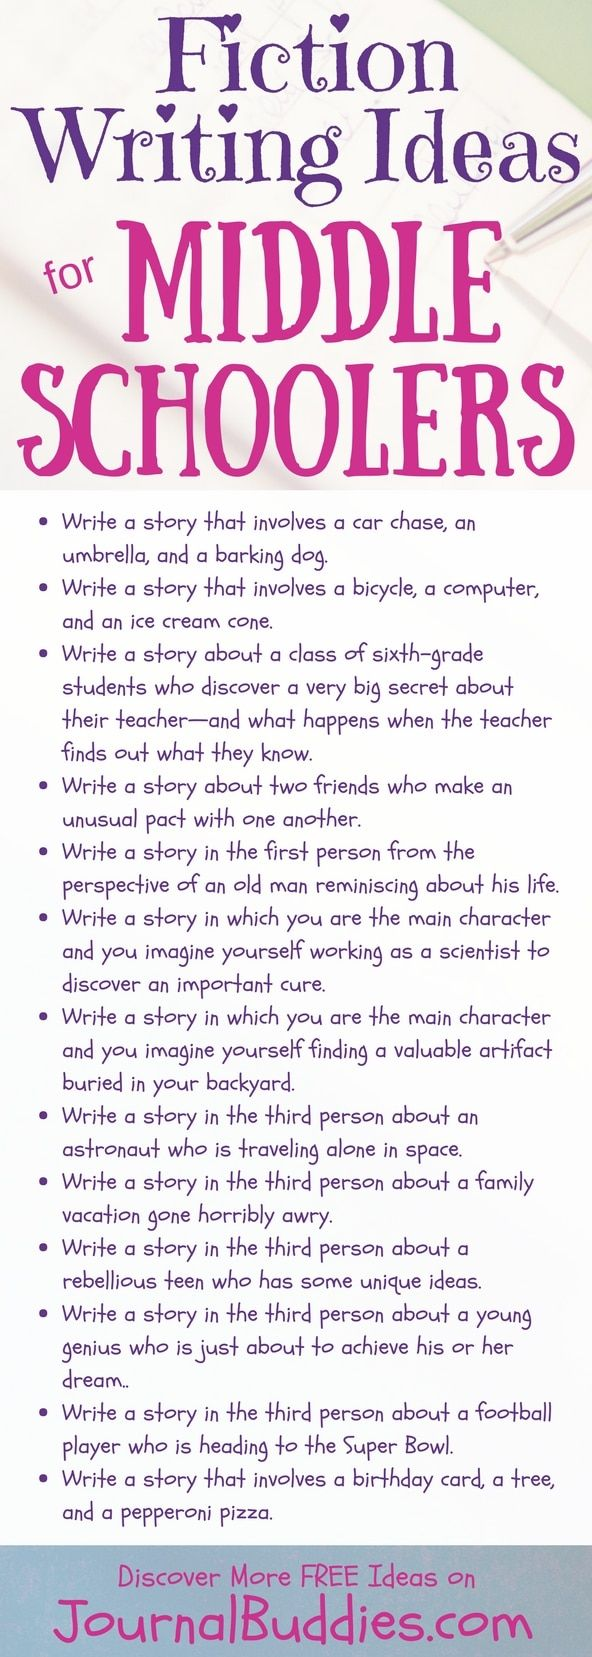 fiction writing prompts for kids The time is now offers weekly writing prompts in poetry, fiction, and creative nonfiction to help you stay committed to your writing practice throughout the year sign up to get the time is now, as well as a weekly book recommendation for guidance and inspiration, delivered to your inbox.